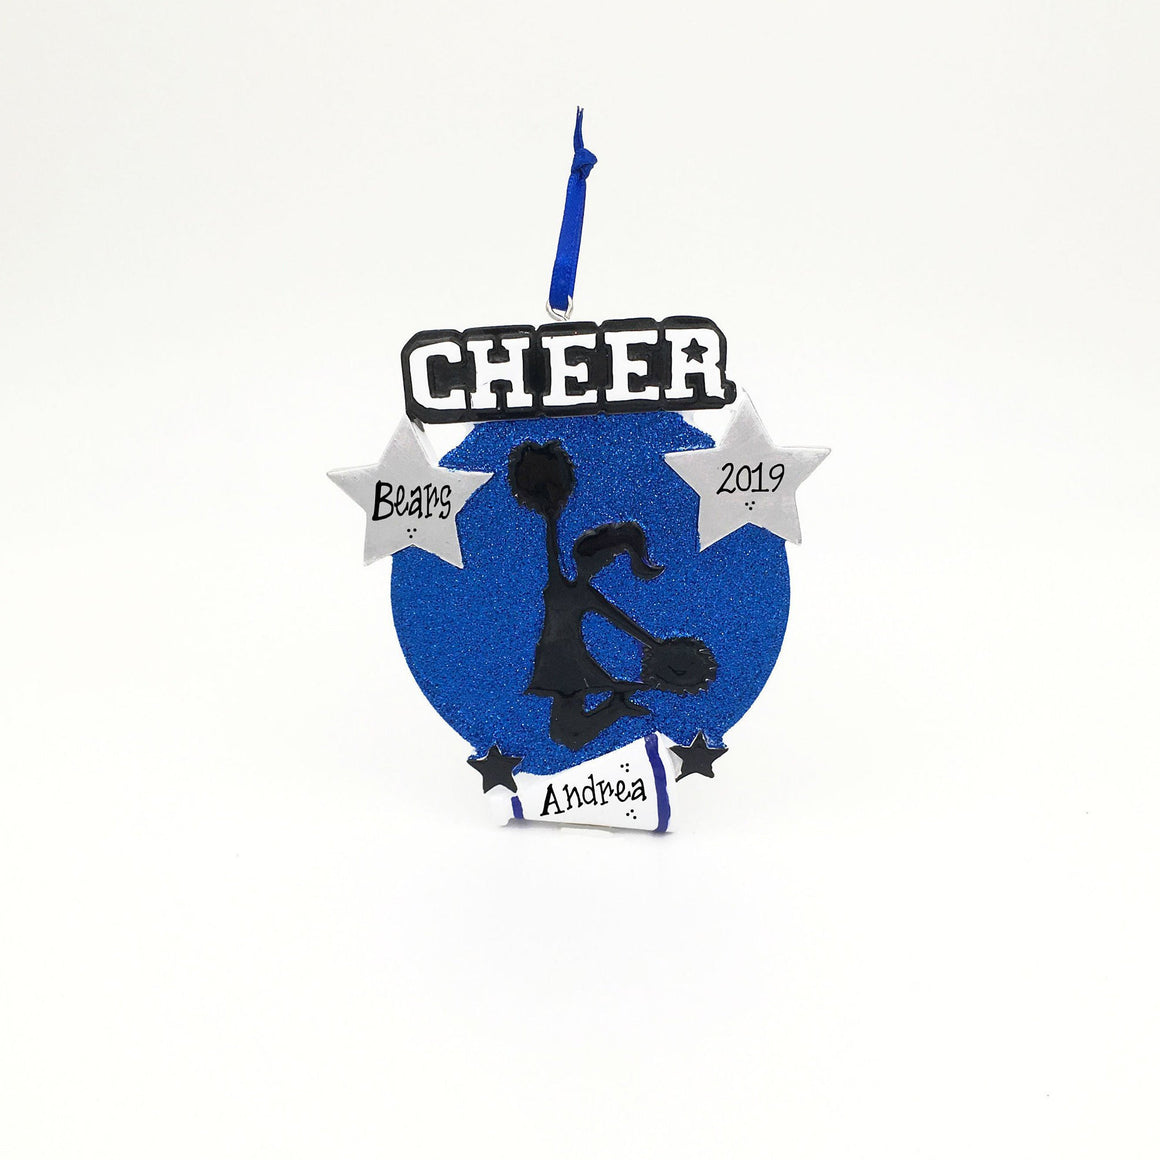 Cheerleader Medallion Christmas Ornament / Cheerleading Ornament Blue and Black / Personalized Christmas Ornament / Cheer Team Ornament